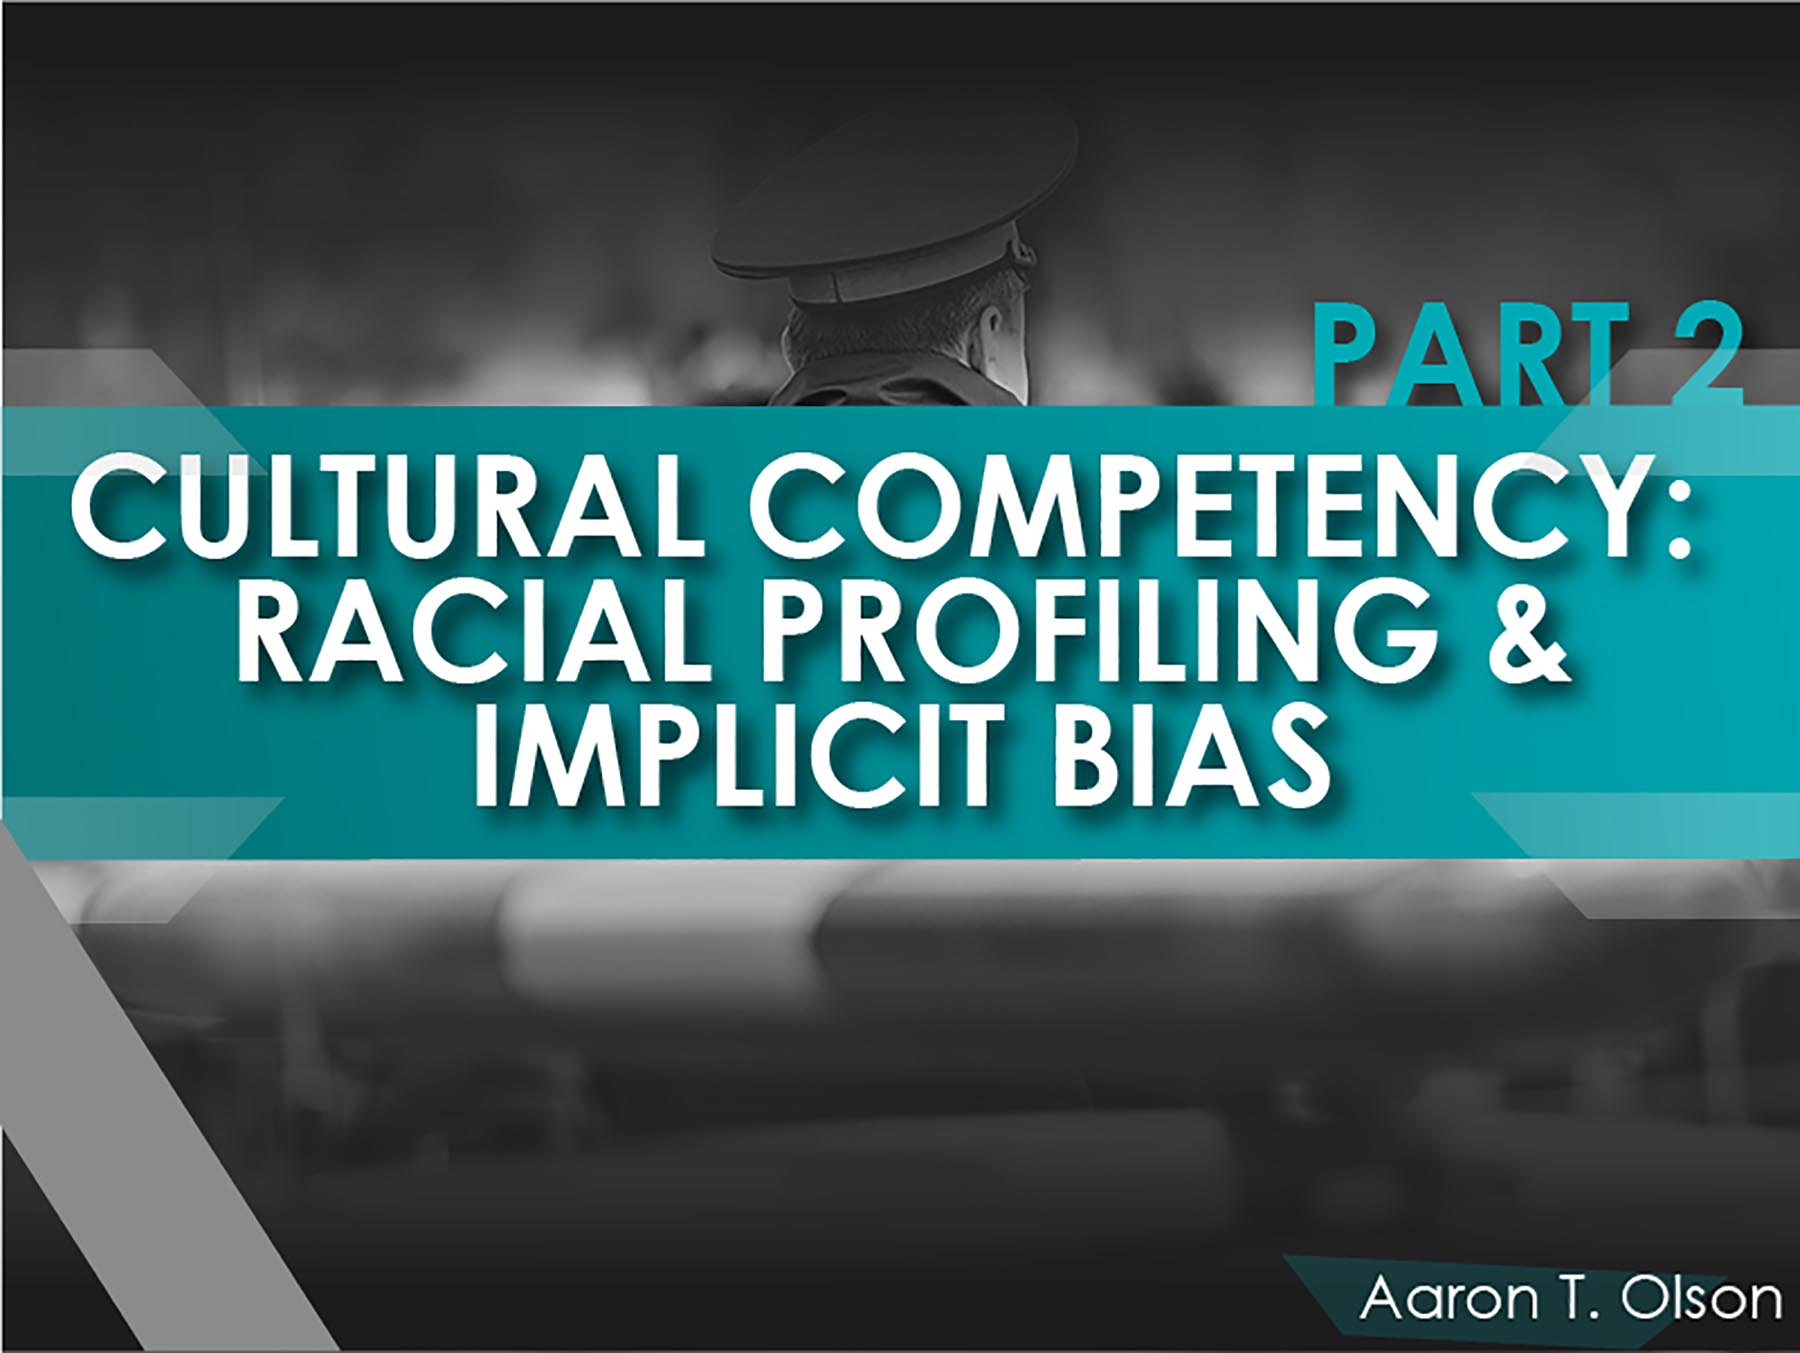 Cultural Competency Racial Profiling and Implicit Bias